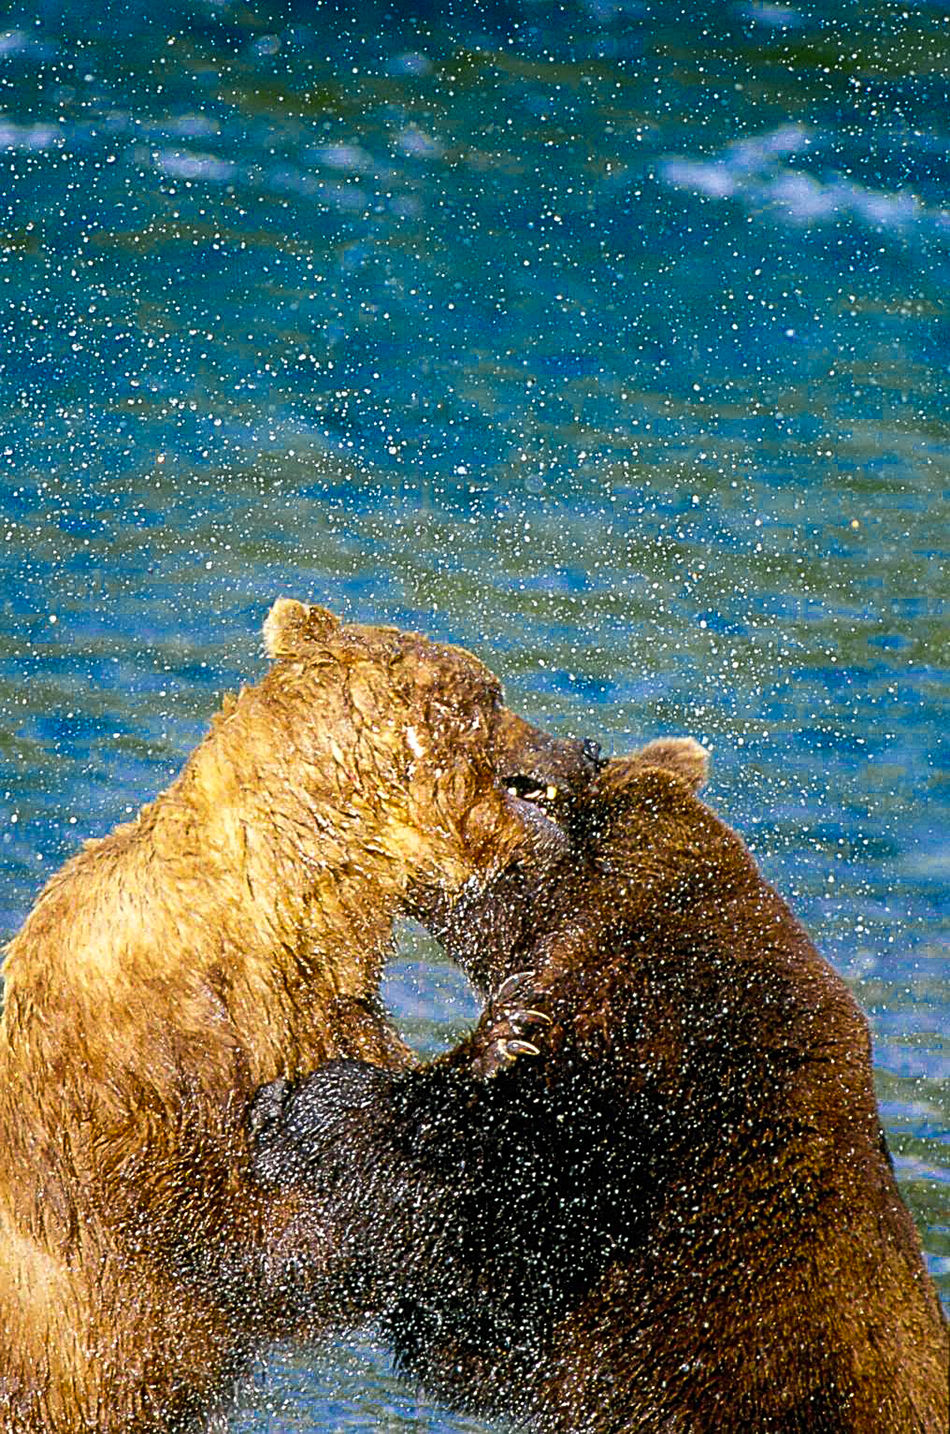 the bears of Brooks Falls and Katmai National Park Animal Themes Animals In The Wild Bear Beauty In Nature Blue Brooks Falls Close-up Discovery Drop Fight Grizzly Lake Motion Nature No People One Animal Outdoors Reflection Rippled Splashing Water Wet Wildlife